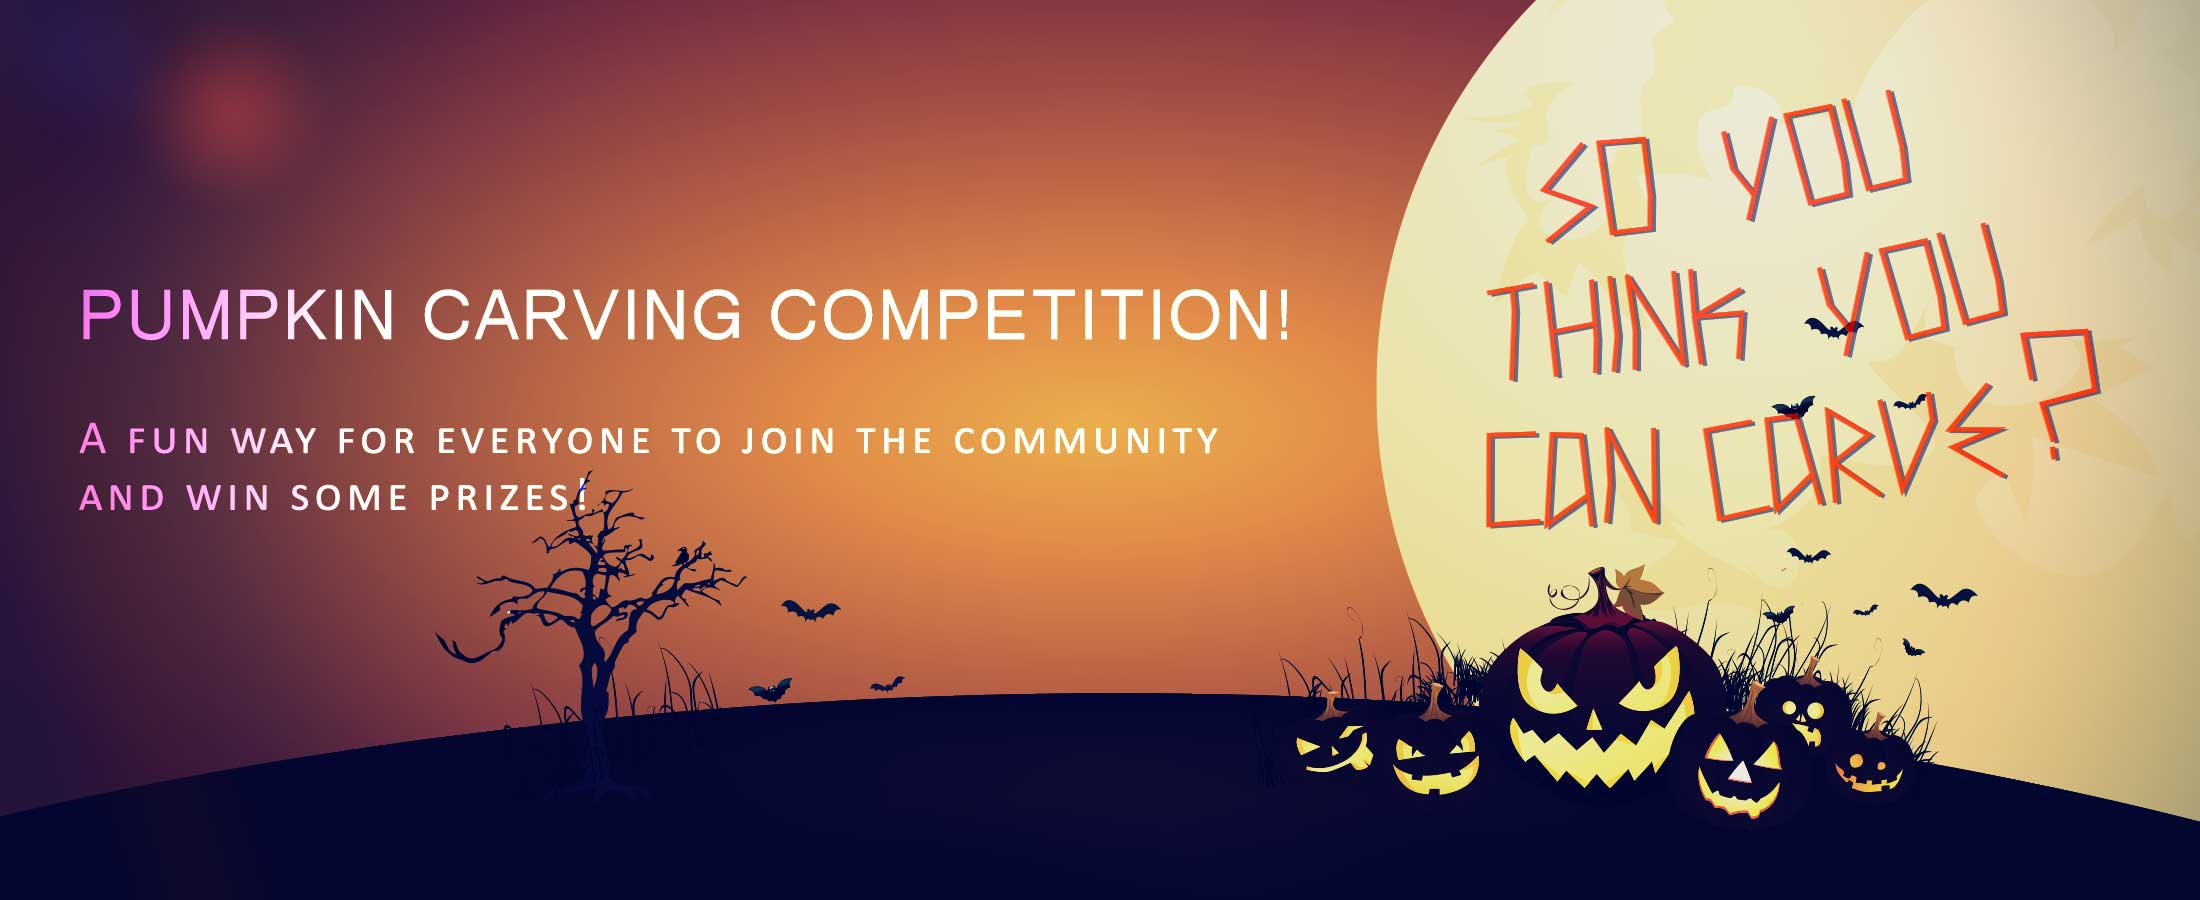 so you think you can carve hot yoga markham pumpkin carving competition